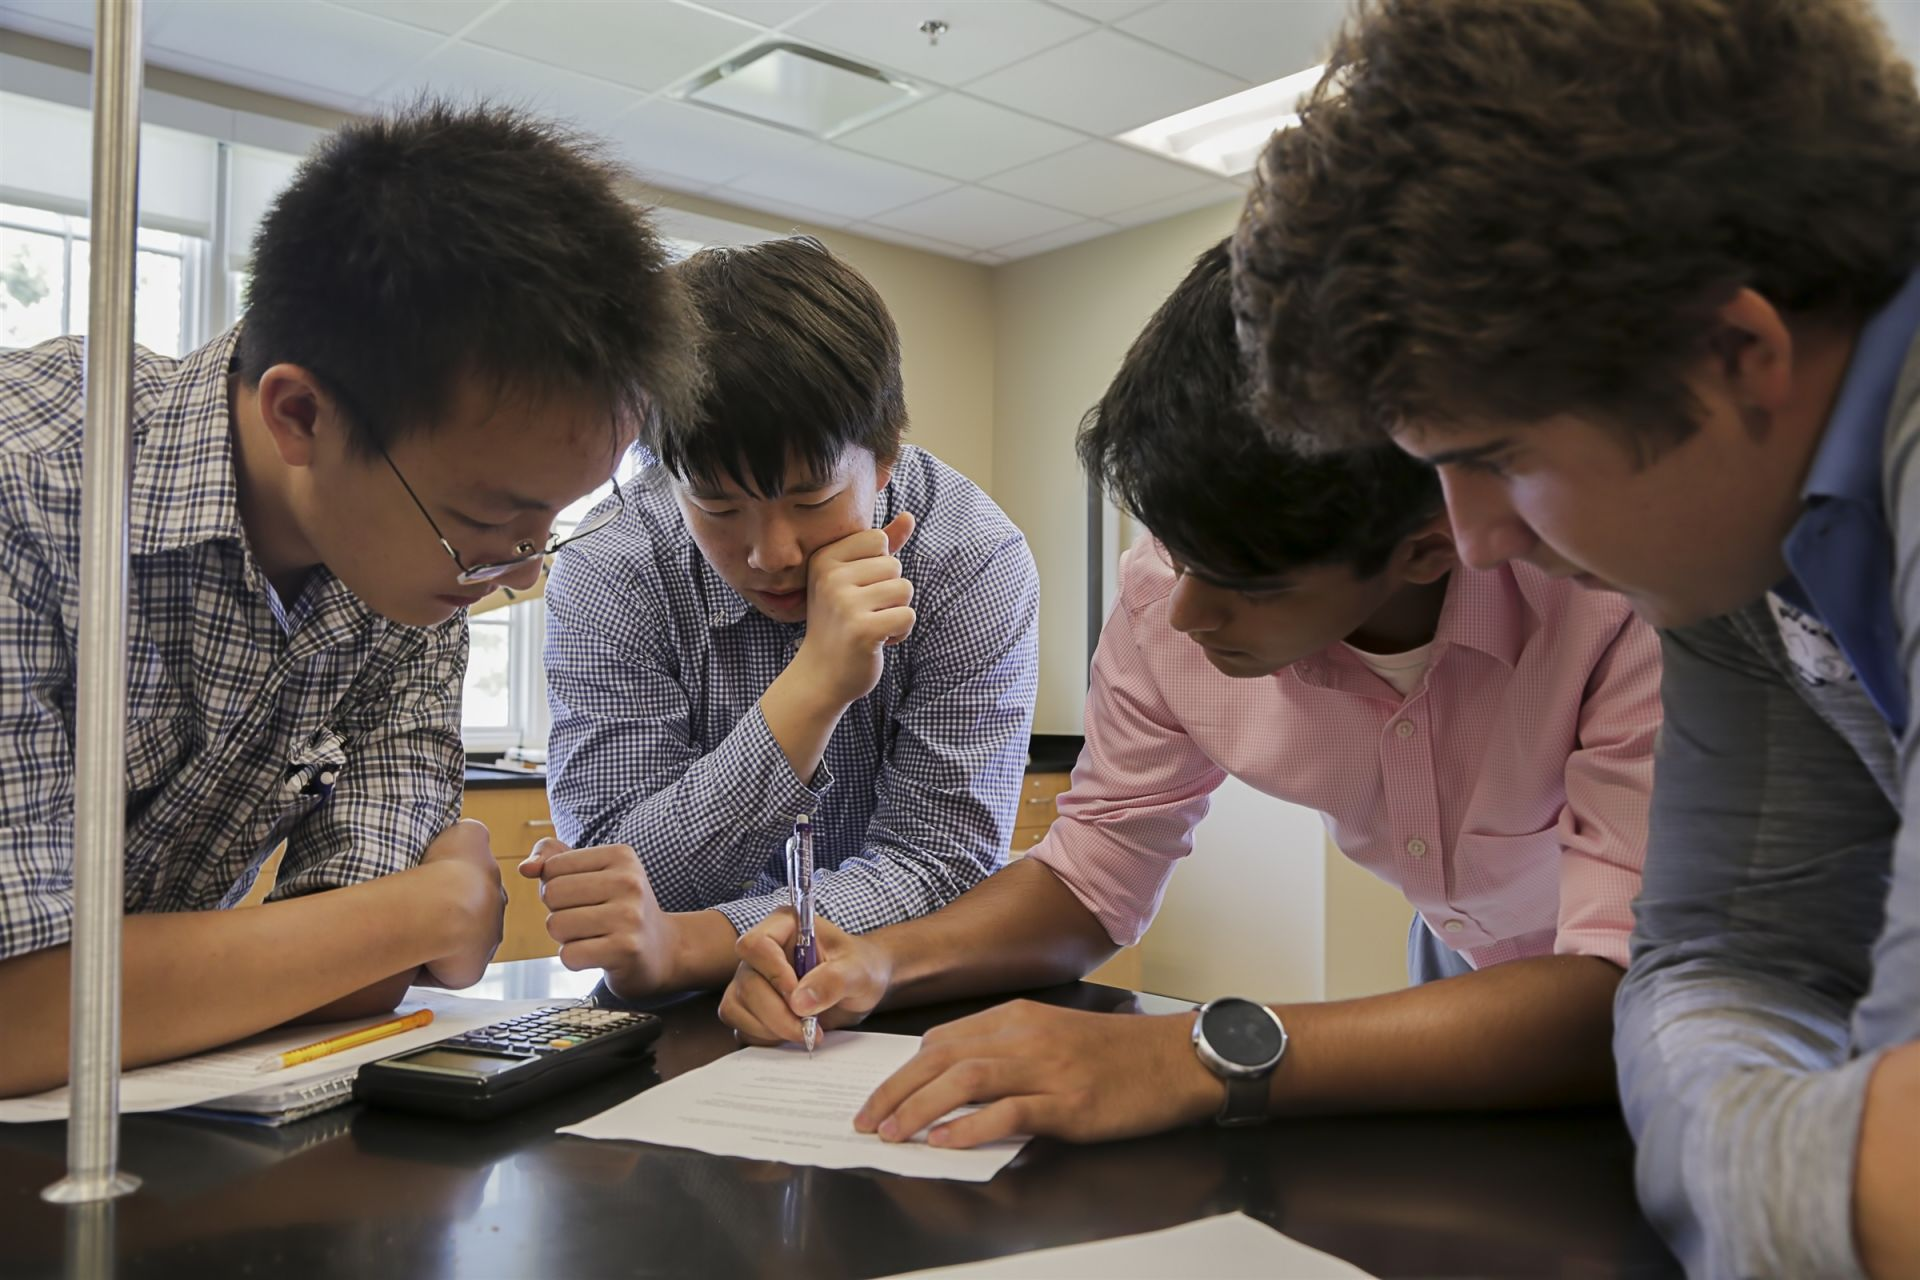 Four young men looking over a document at Casady High School in Oklahoma City